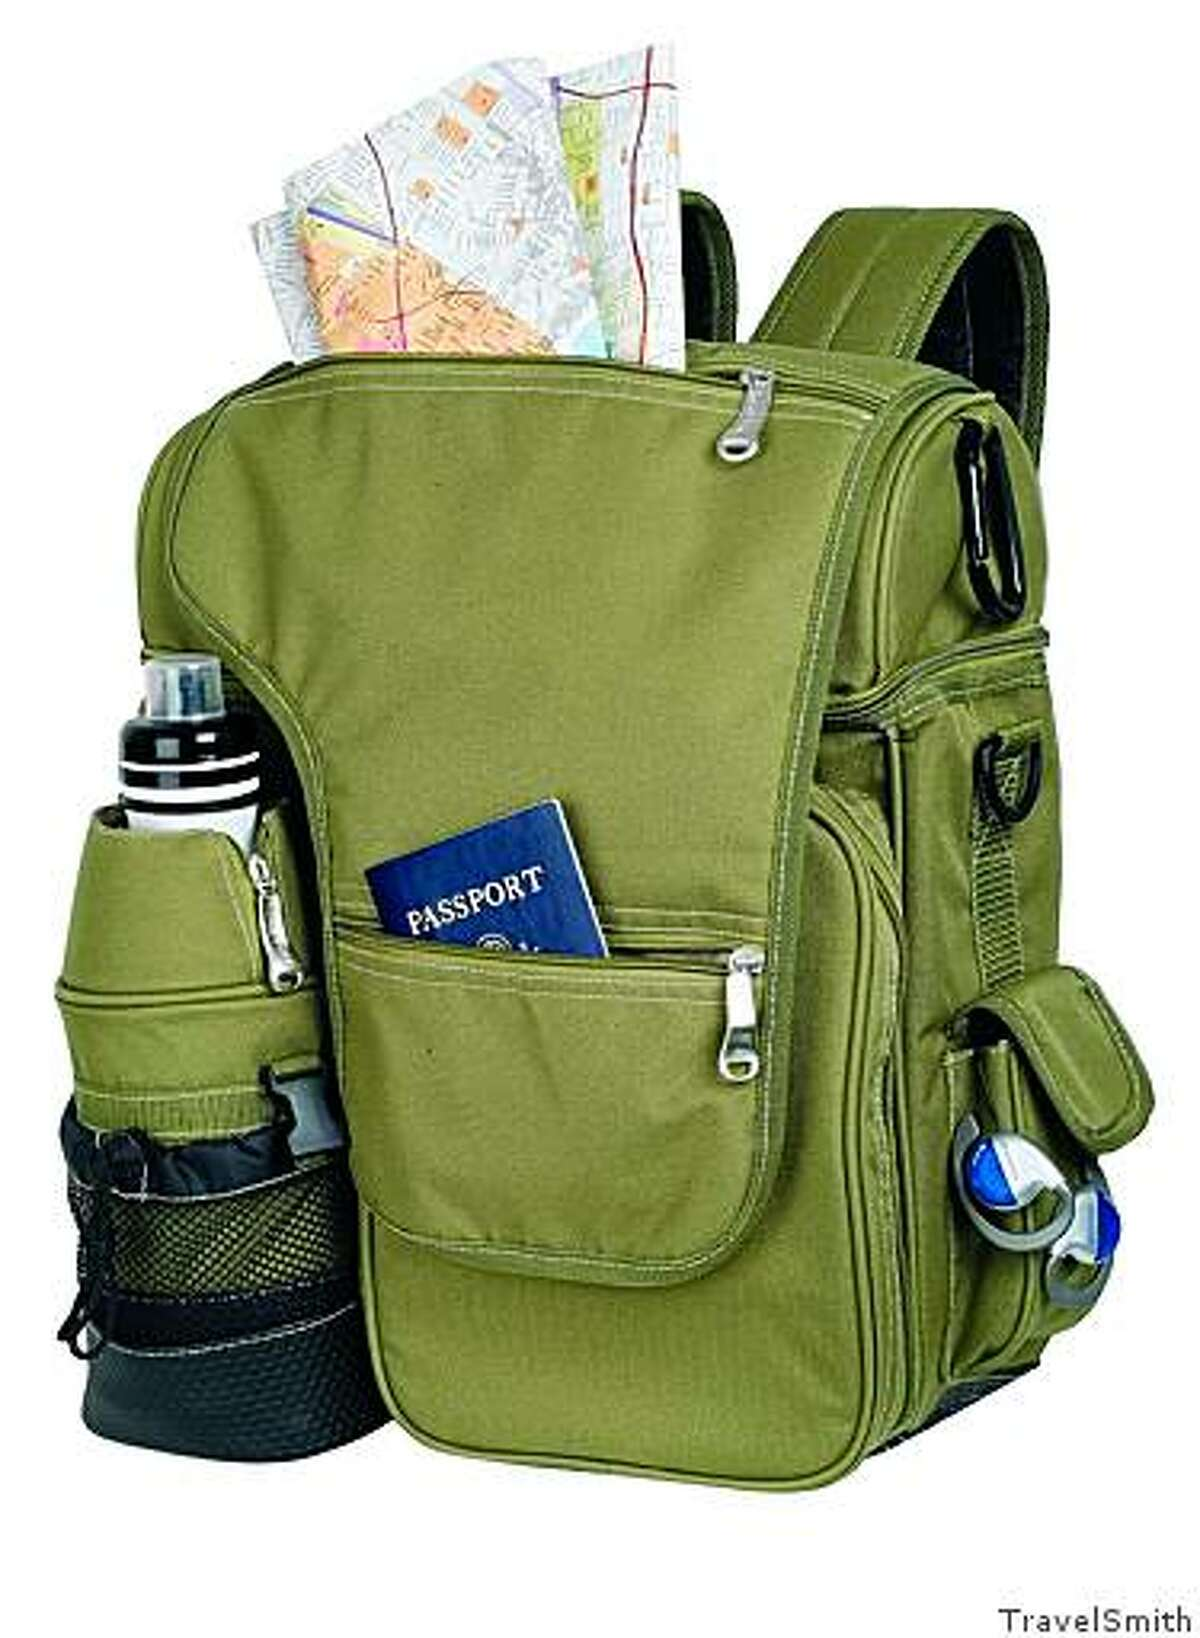 The Ultimate Day-Trip Bag from TravelSmith.